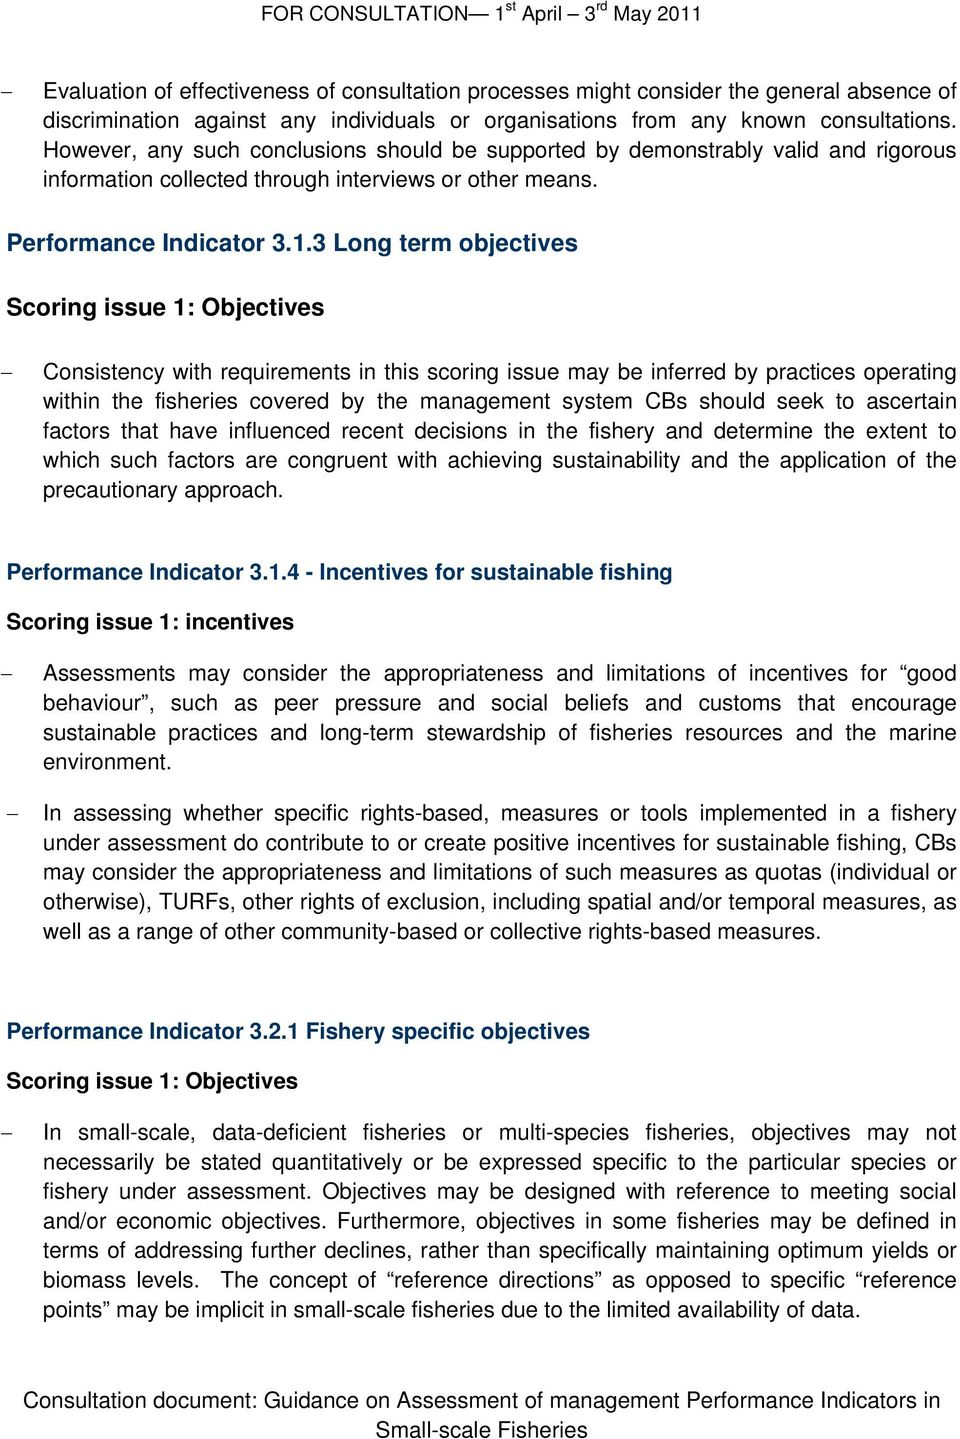 3 Long term objectives Scoring issue 1: Objectives Consistency with requirements in this scoring issue may be inferred by practices operating within the fisheries covered by the management system CBs